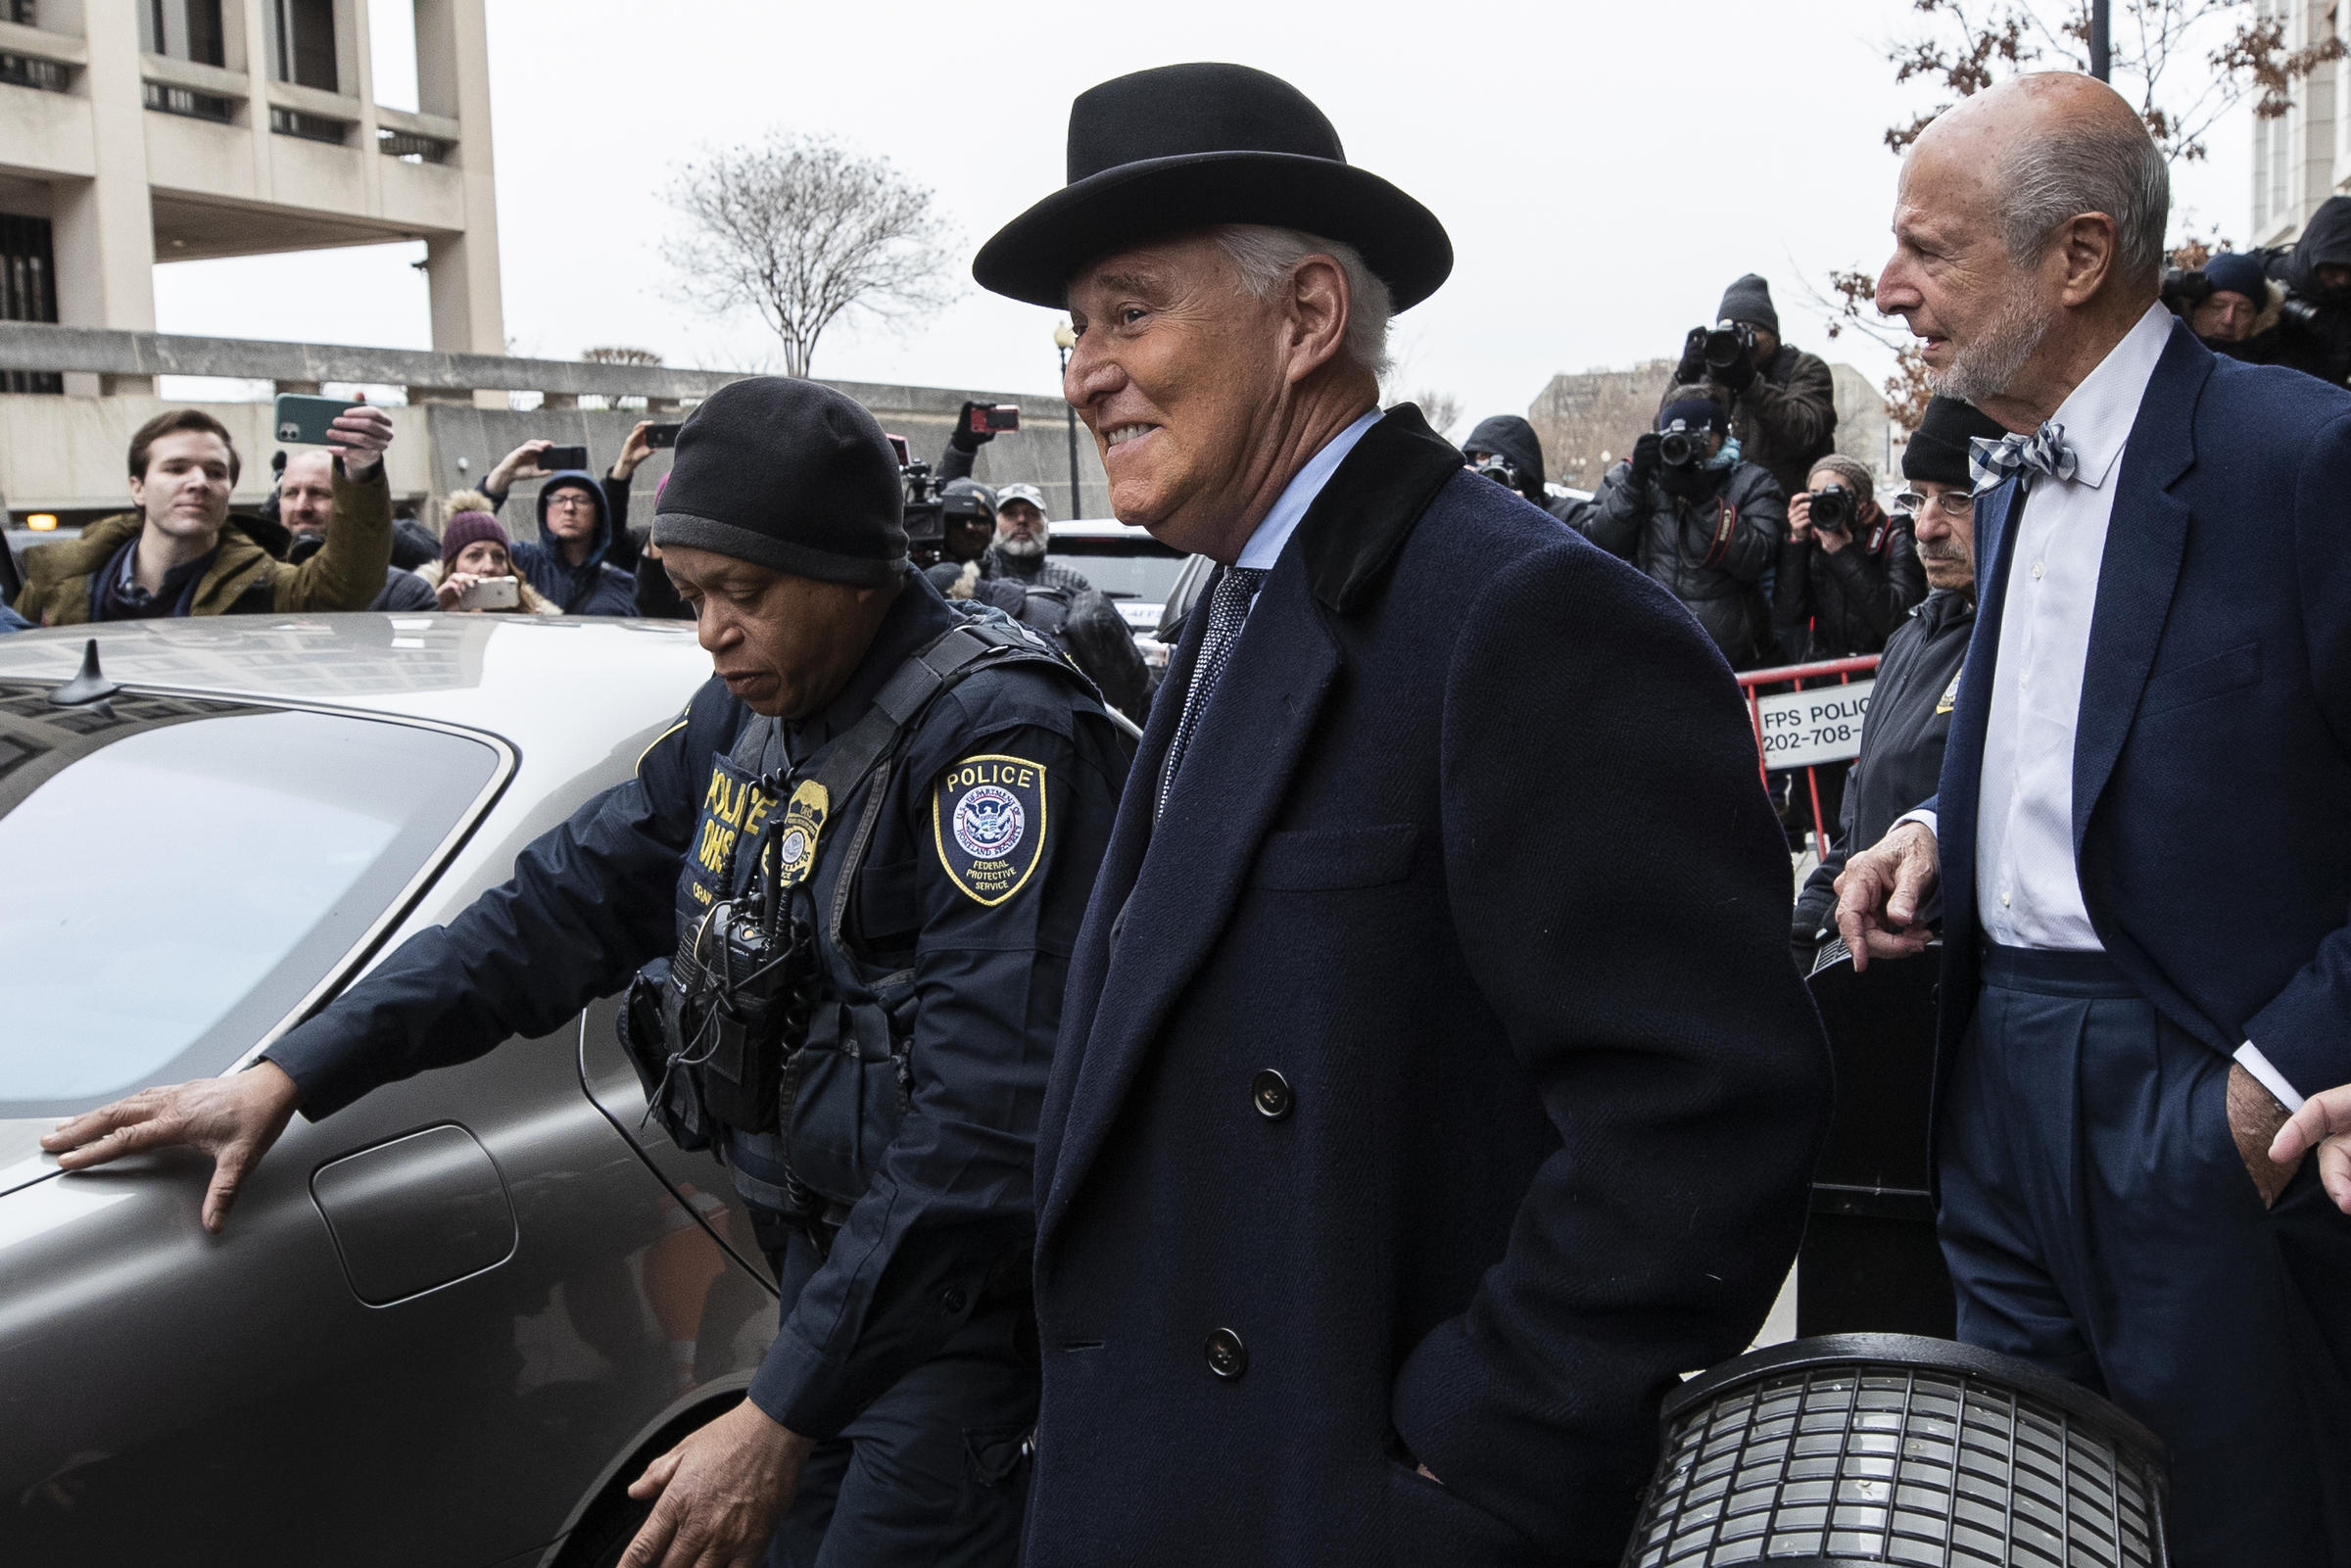 Judge Weighs Roger Stone's Bid For A New Trial As Trump Attacks Her On Twitter